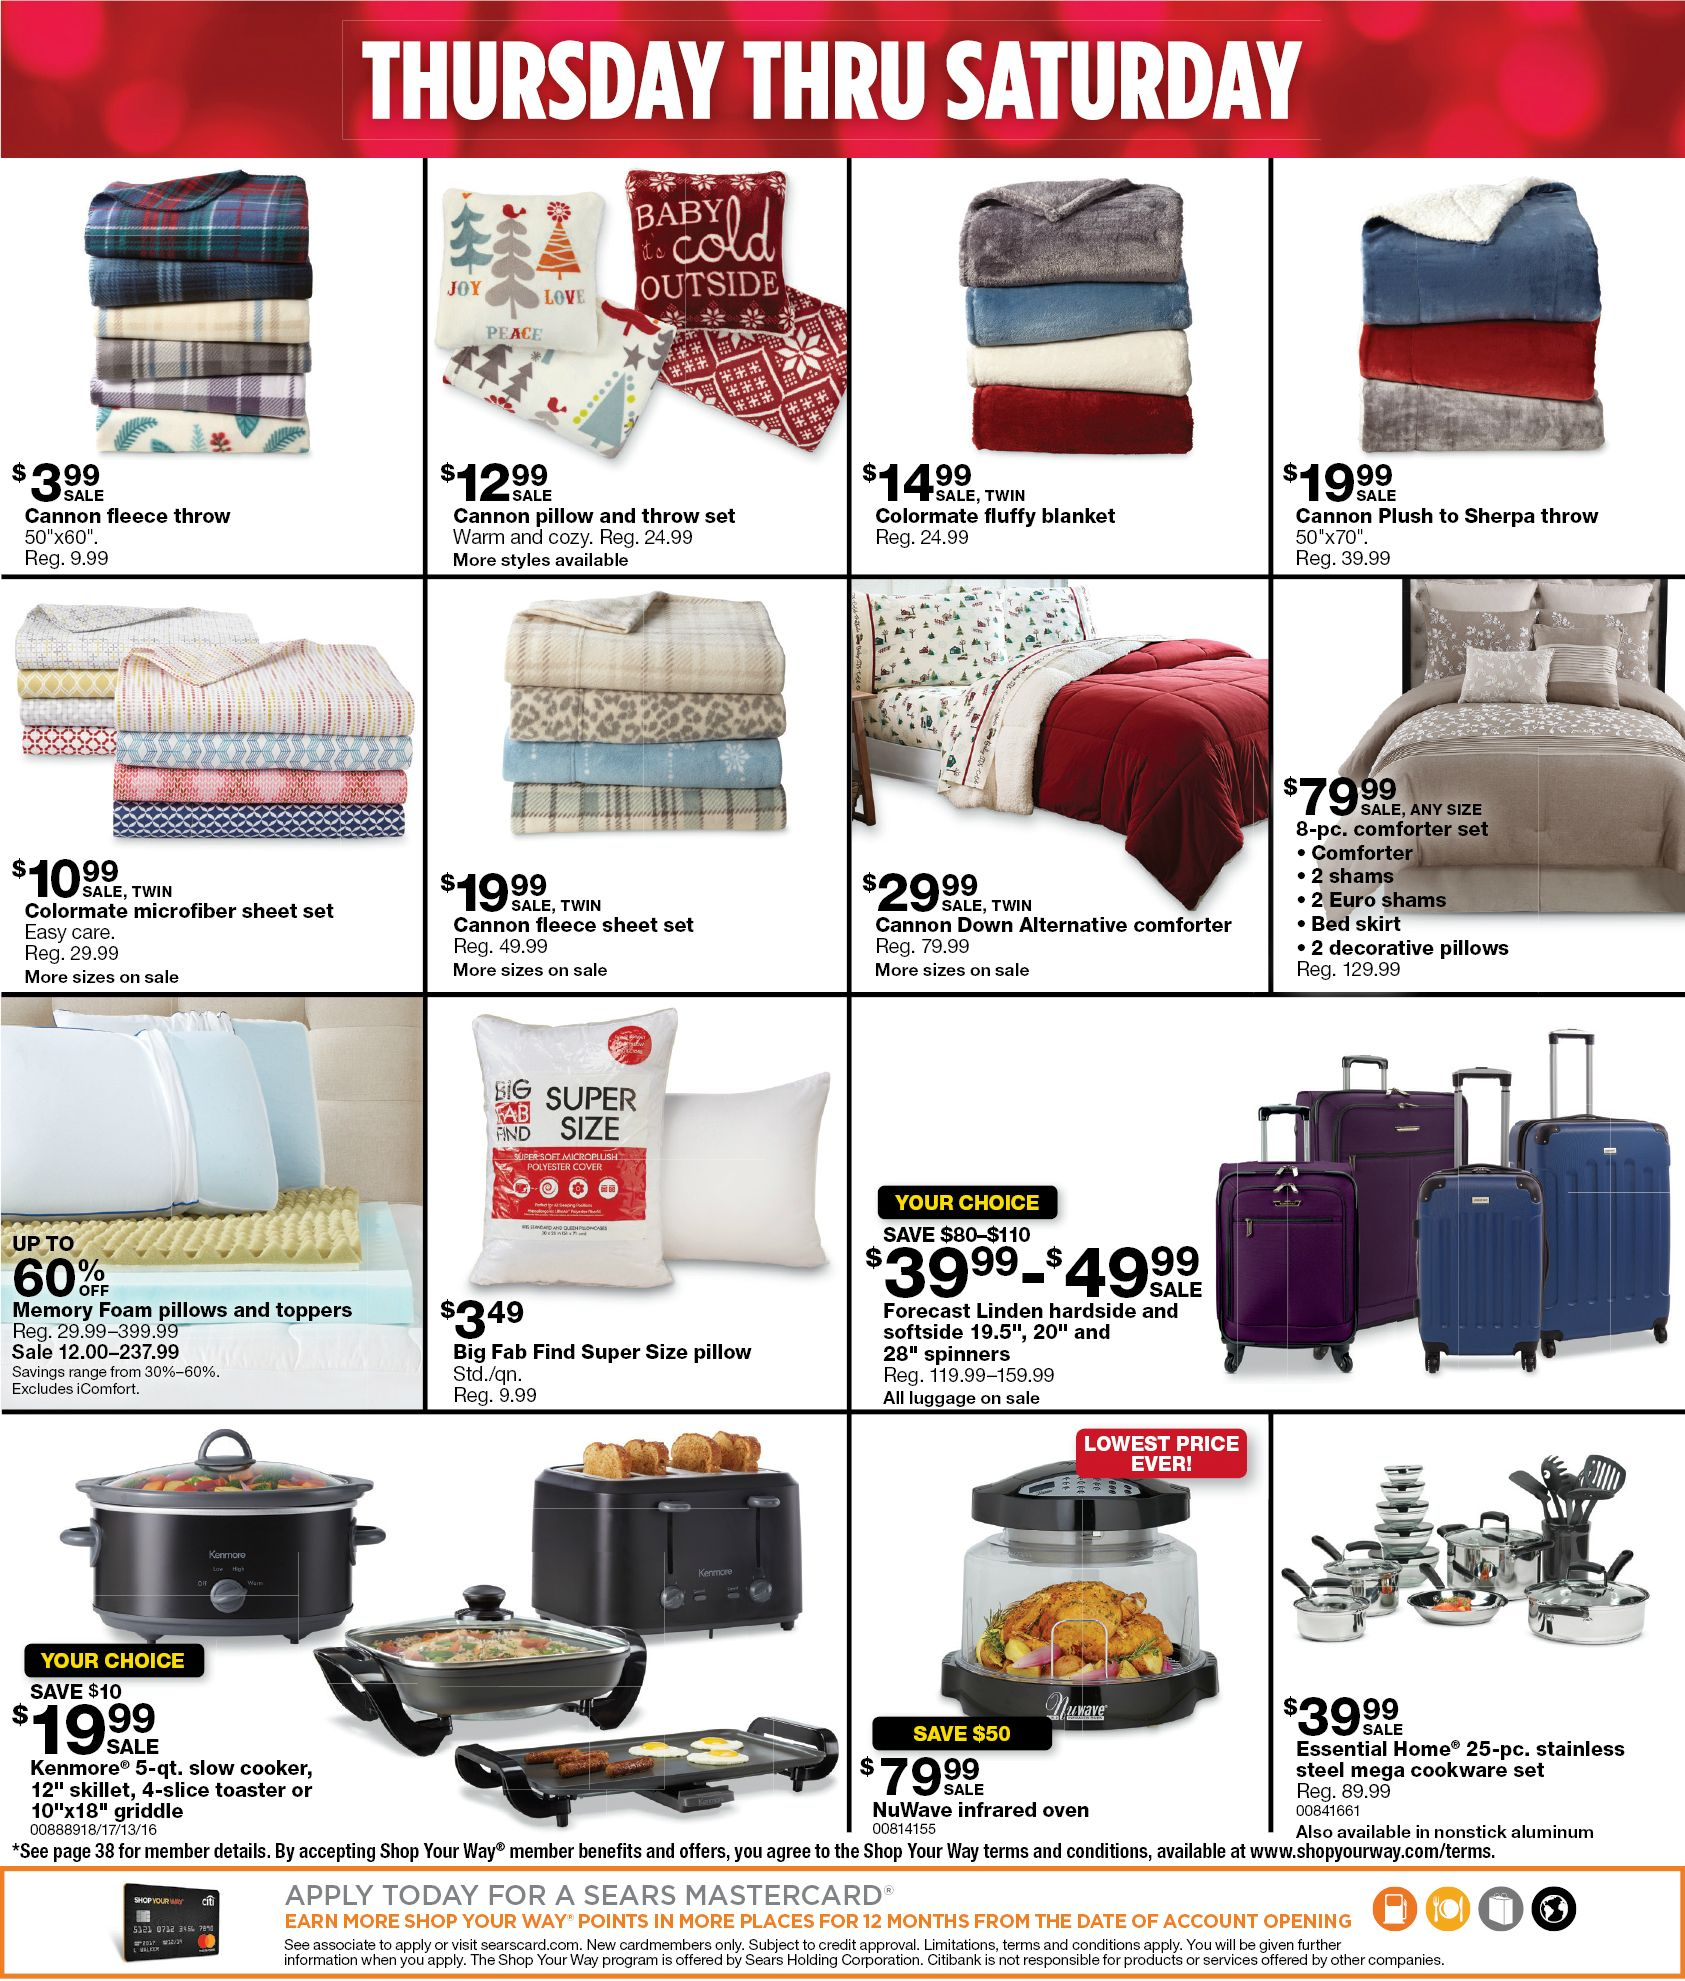 Sears Black Friday 2017 Ads and Deals Here is everything ...